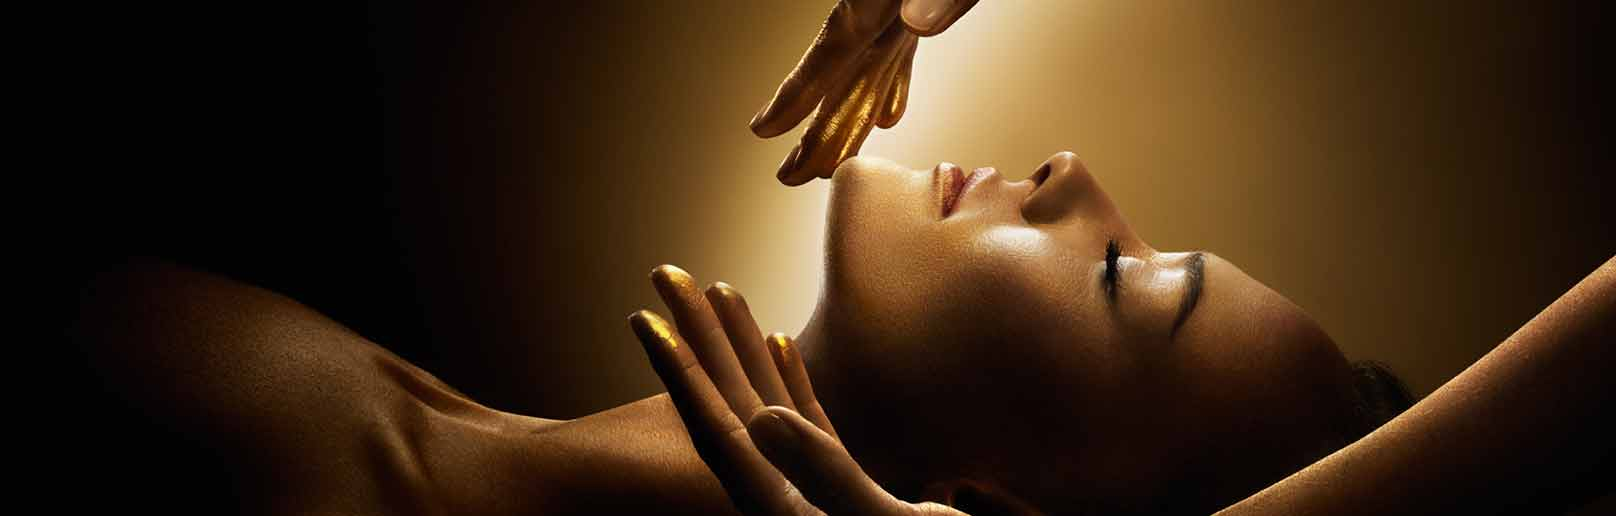 Decleor facial massage